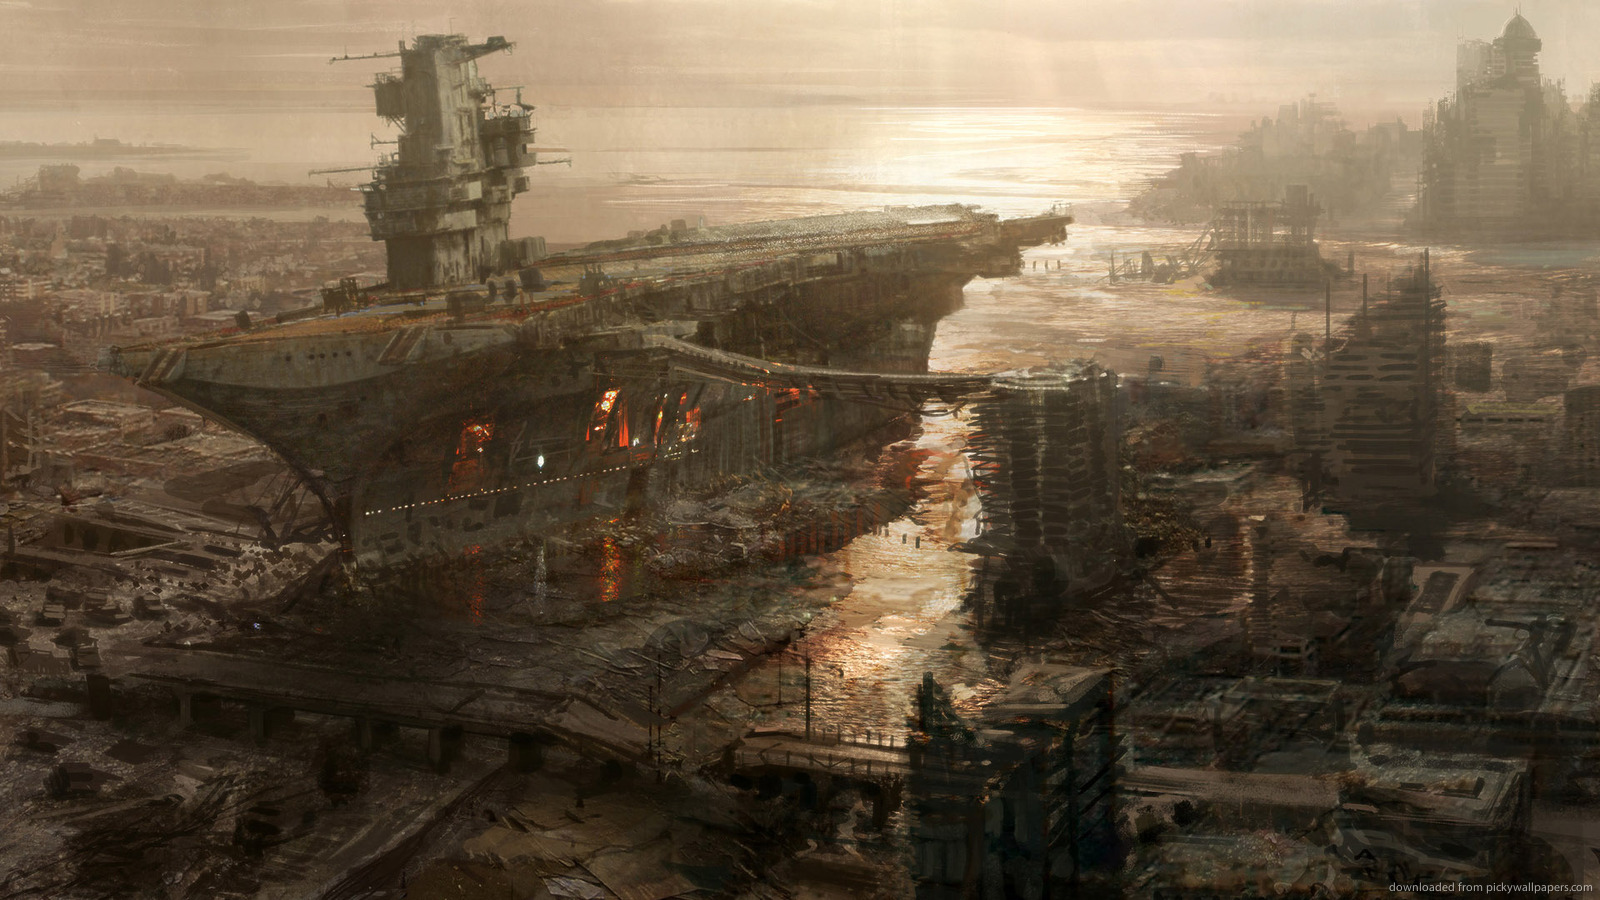 Download 1600x900 Fallout 3 Rivet City Concept Art Wallpaper 1600x900